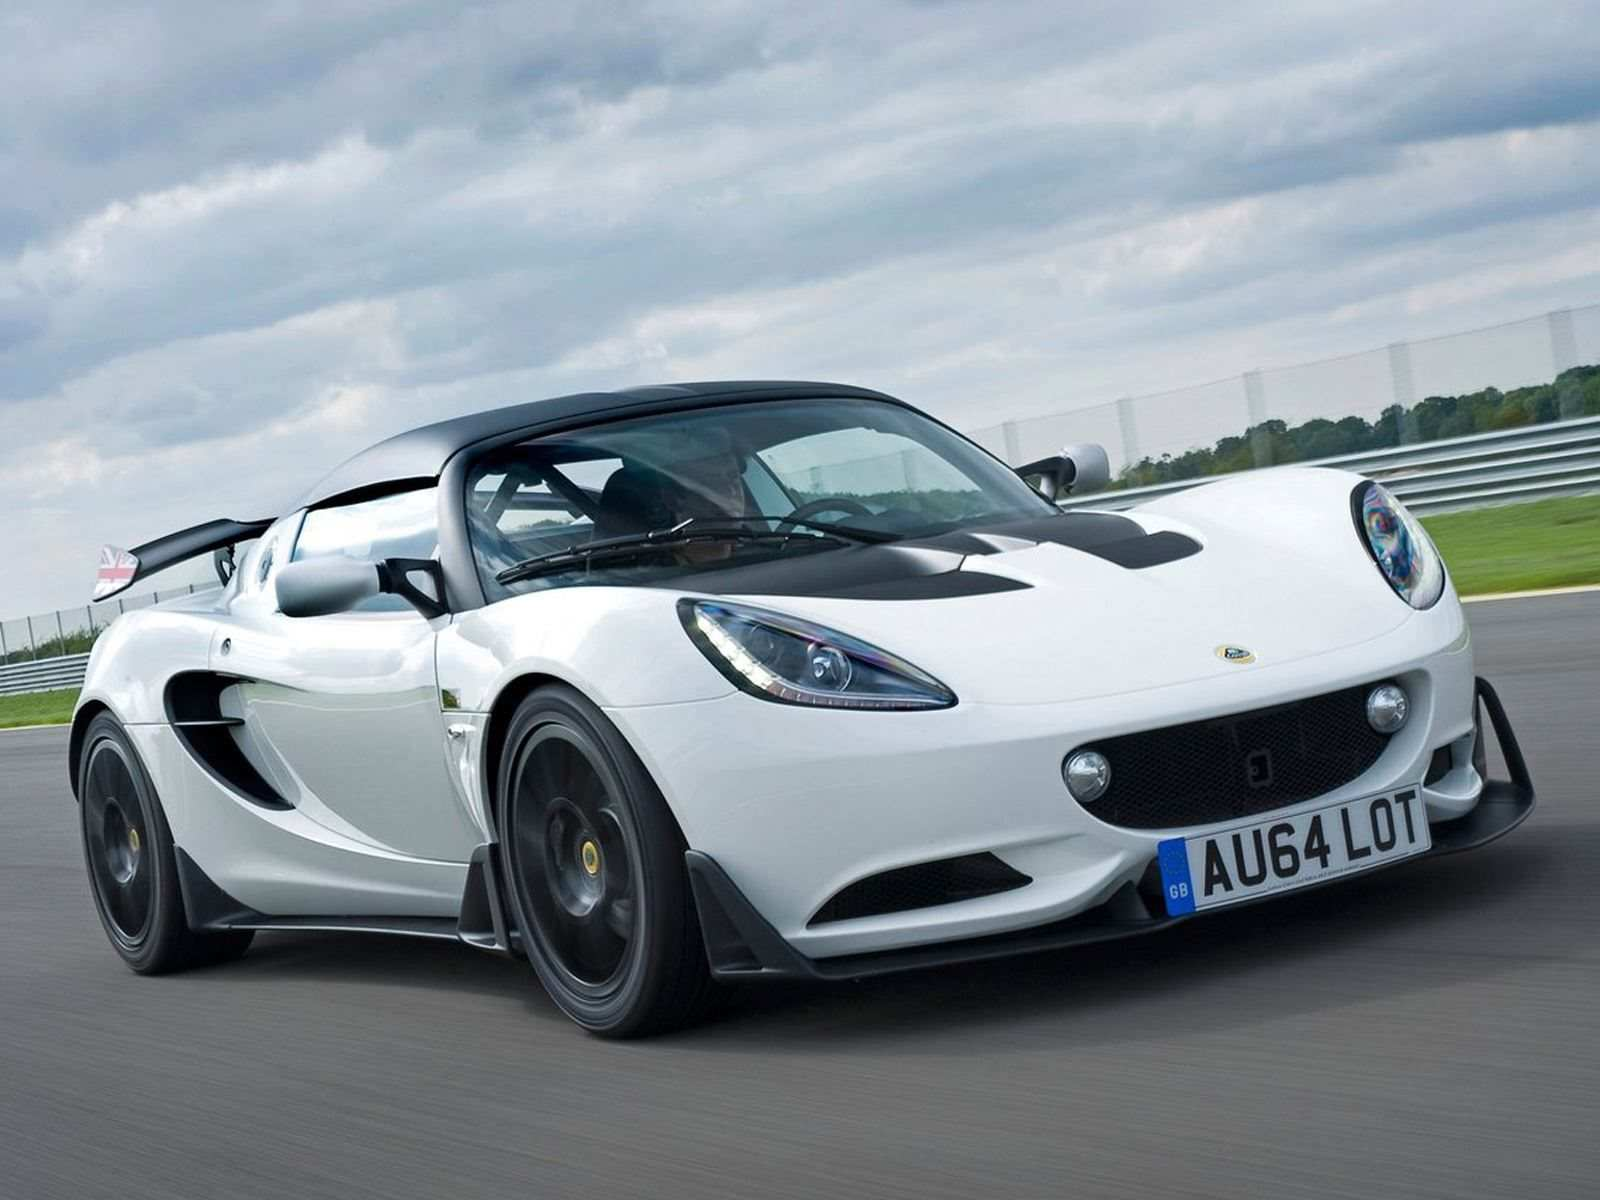 73 The Best 2020 Lotus Exige Speed Test | Review Cars 2020